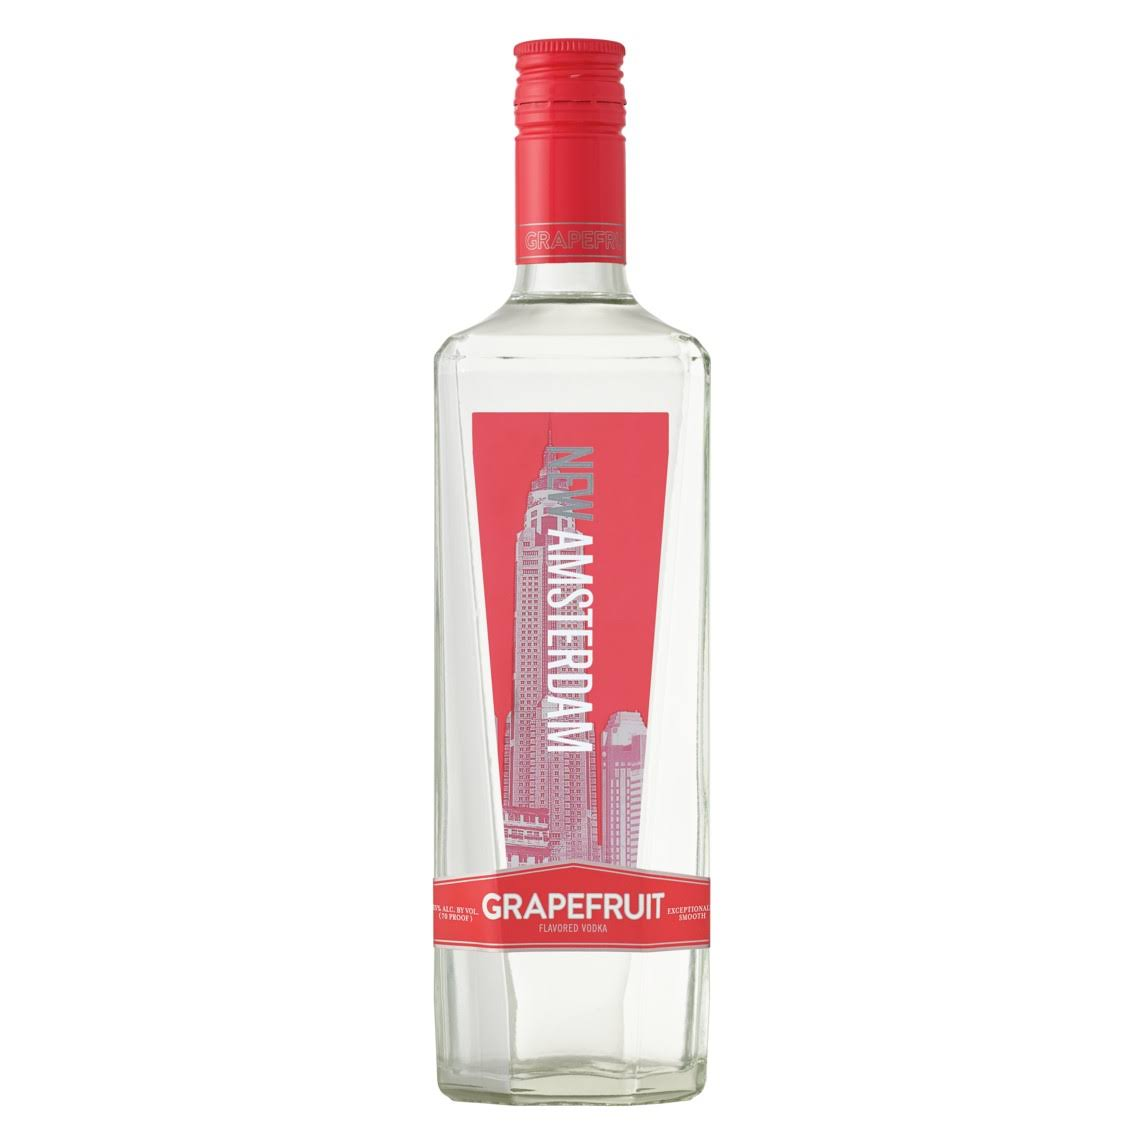 New Amsterdam Grapefruit Vodka 750ml